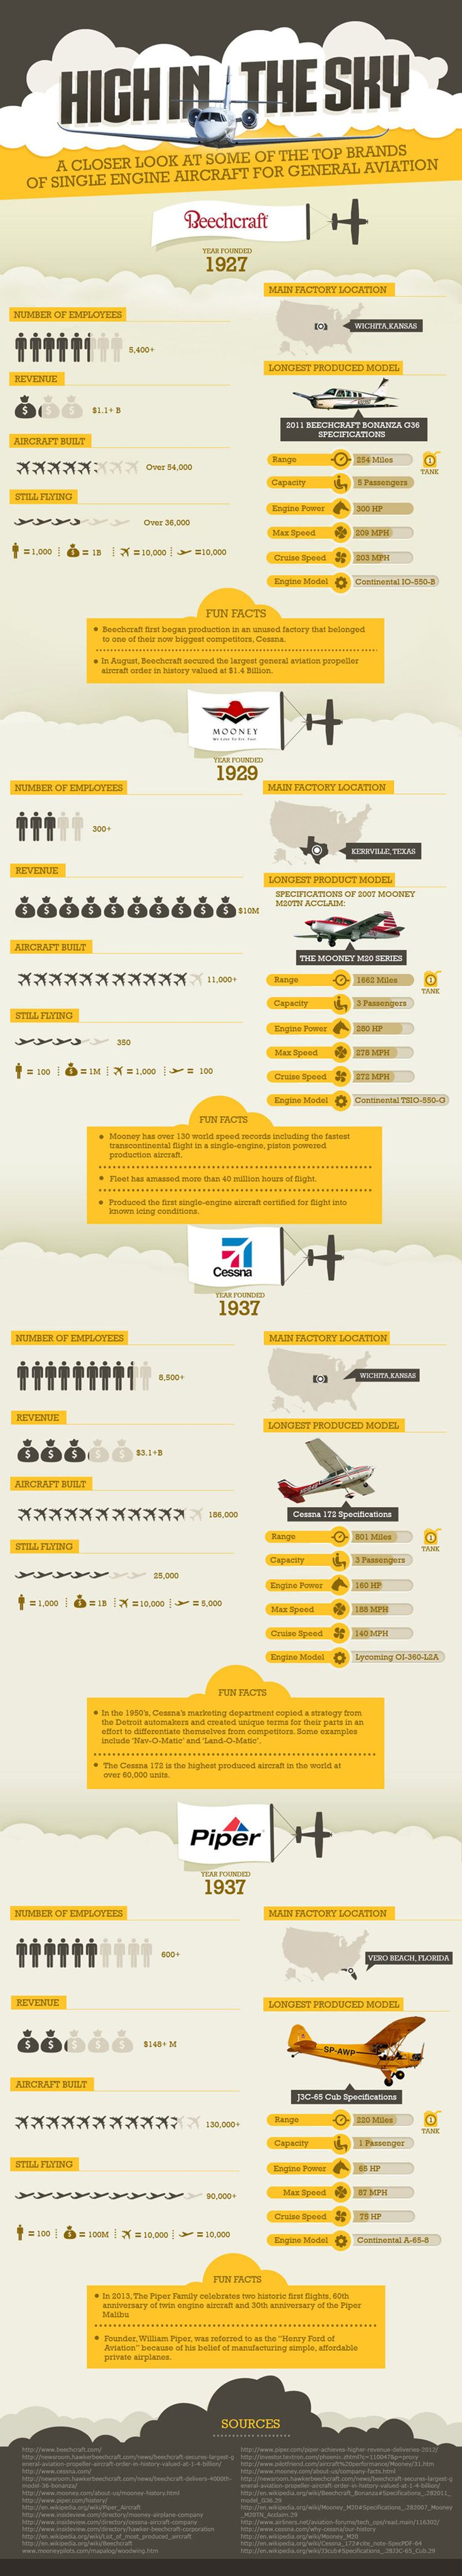 High In The Sky #Infographic #Sky #aircraft